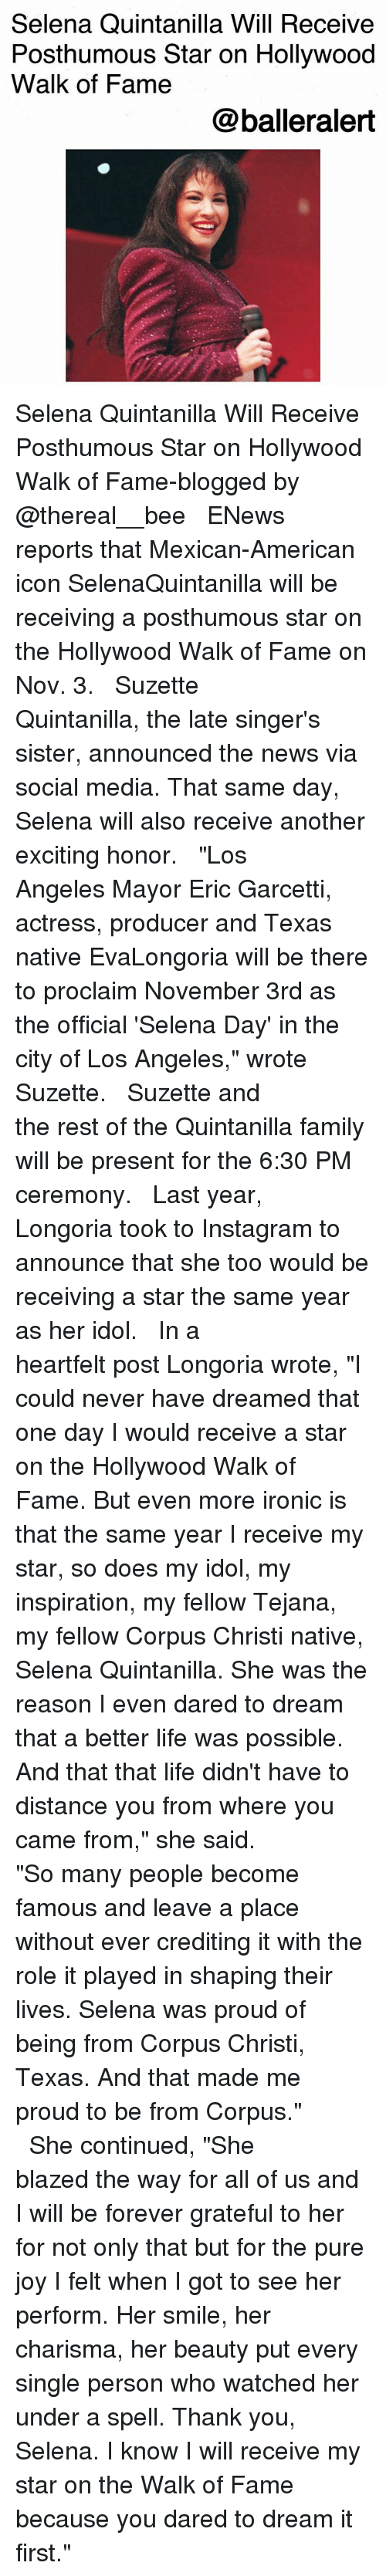 """proclaim: Selena Quintanilla Will Receive  Posthumous Star on Hollywood  Walk of Fame  @balleralert Selena Quintanilla Will Receive Posthumous Star on Hollywood Walk of Fame-blogged by @thereal__bee ⠀⠀⠀⠀⠀⠀⠀⠀⠀ ⠀⠀ ENews reports that Mexican-American icon SelenaQuintanilla will be receiving a posthumous star on the Hollywood Walk of Fame on Nov. 3. ⠀⠀⠀⠀⠀⠀⠀⠀⠀ ⠀⠀ Suzette Quintanilla, the late singer's sister, announced the news via social media. That same day, Selena will also receive another exciting honor. ⠀⠀⠀⠀⠀⠀⠀⠀⠀ ⠀⠀ """"Los Angeles Mayor Eric Garcetti, actress, producer and Texas native EvaLongoria will be there to proclaim November 3rd as the official 'Selena Day' in the city of Los Angeles,"""" wrote Suzette. ⠀⠀⠀⠀⠀⠀⠀⠀⠀ ⠀⠀ Suzette and the rest of the Quintanilla family will be present for the 6:30 PM ceremony. ⠀⠀⠀⠀⠀⠀⠀⠀⠀ ⠀⠀ Last year, Longoria took to Instagram to announce that she too would be receiving a star the same year as her idol. ⠀⠀⠀⠀⠀⠀⠀⠀⠀ ⠀⠀ In a heartfelt post Longoria wrote, """"I could never have dreamed that one day I would receive a star on the Hollywood Walk of Fame. But even more ironic is that the same year I receive my star, so does my idol, my inspiration, my fellow Tejana, my fellow Corpus Christi native, Selena Quintanilla. She was the reason I even dared to dream that a better life was possible. And that that life didn't have to distance you from where you came from,"""" she said. ⠀⠀⠀⠀⠀⠀⠀⠀⠀ ⠀⠀ """"So many people become famous and leave a place without ever crediting it with the role it played in shaping their lives. Selena was proud of being from Corpus Christi, Texas. And that made me proud to be from Corpus."""" ⠀⠀⠀⠀⠀⠀⠀⠀⠀ ⠀⠀ She continued, """"She blazed the way for all of us and I will be forever grateful to her for not only that but for the pure joy I felt when I got to see her perform. Her smile, her charisma, her beauty put every single person who watched her under a spell. Thank you, Selena. I know I will receive my star on the Walk of Fame because you dared"""